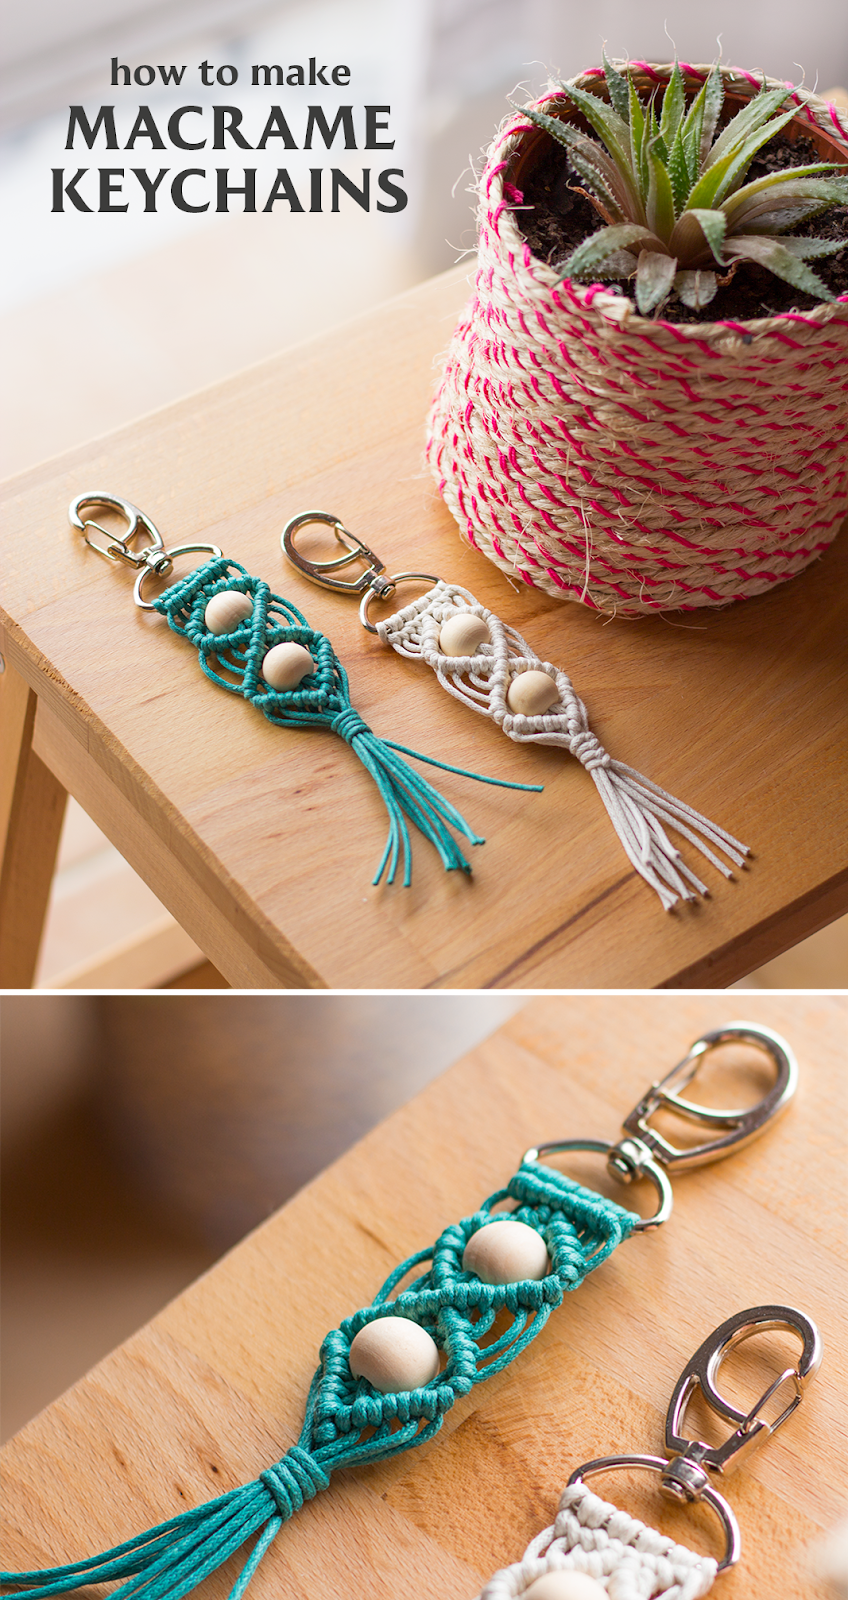 Learn how you can make these macrame keychains that are also great gifts